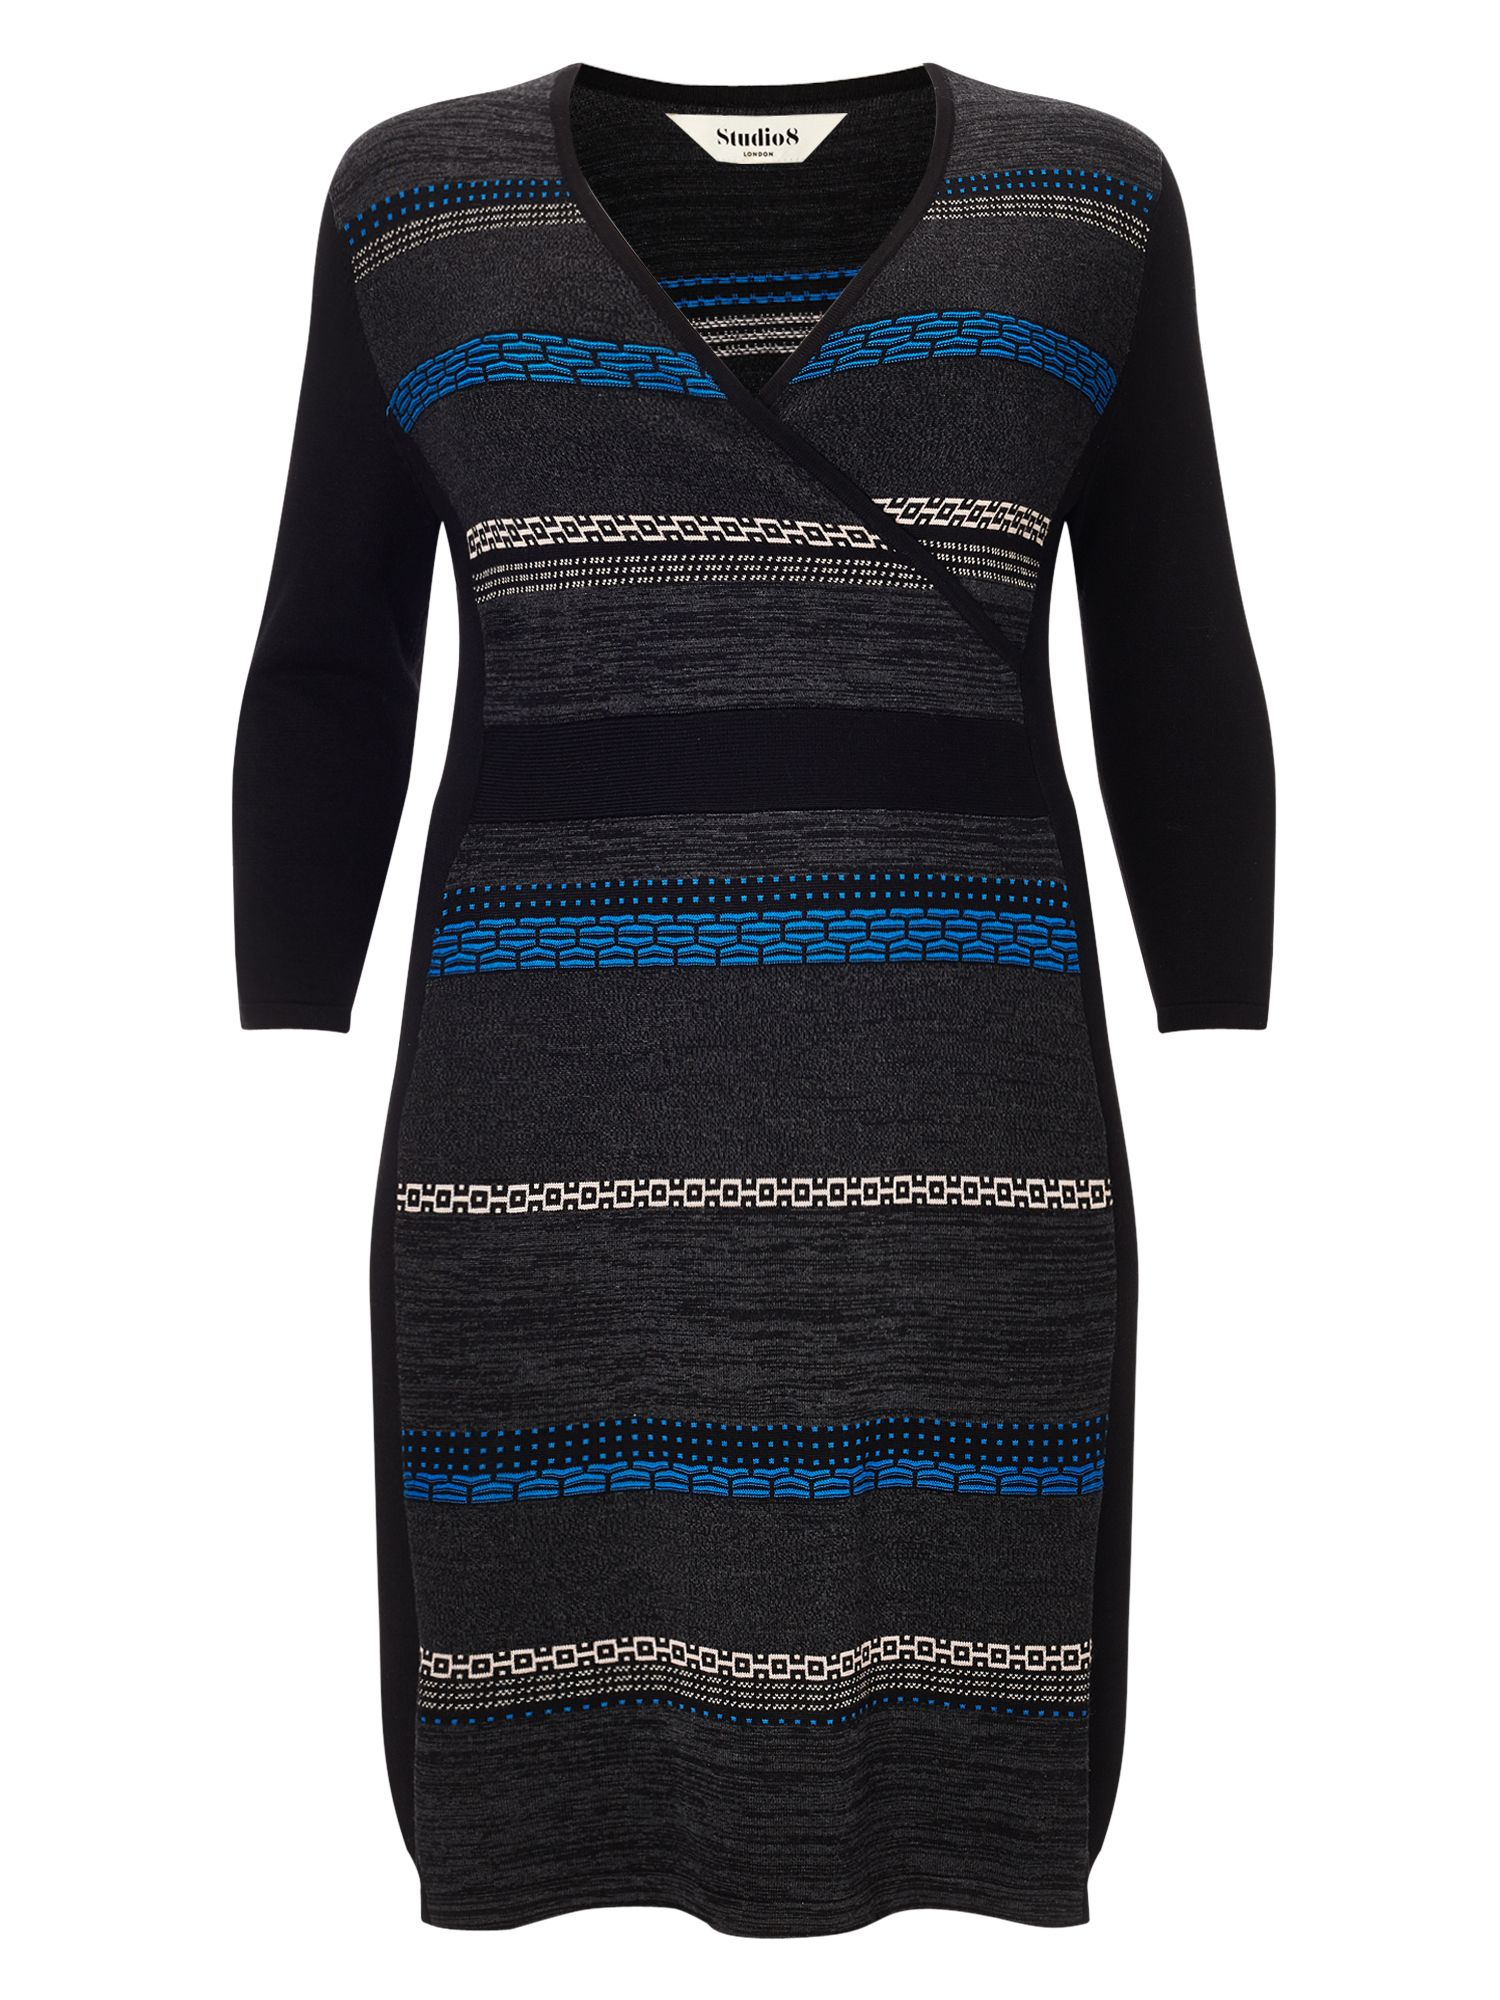 Studio 8 Natalie knit dress, Multi-Coloured